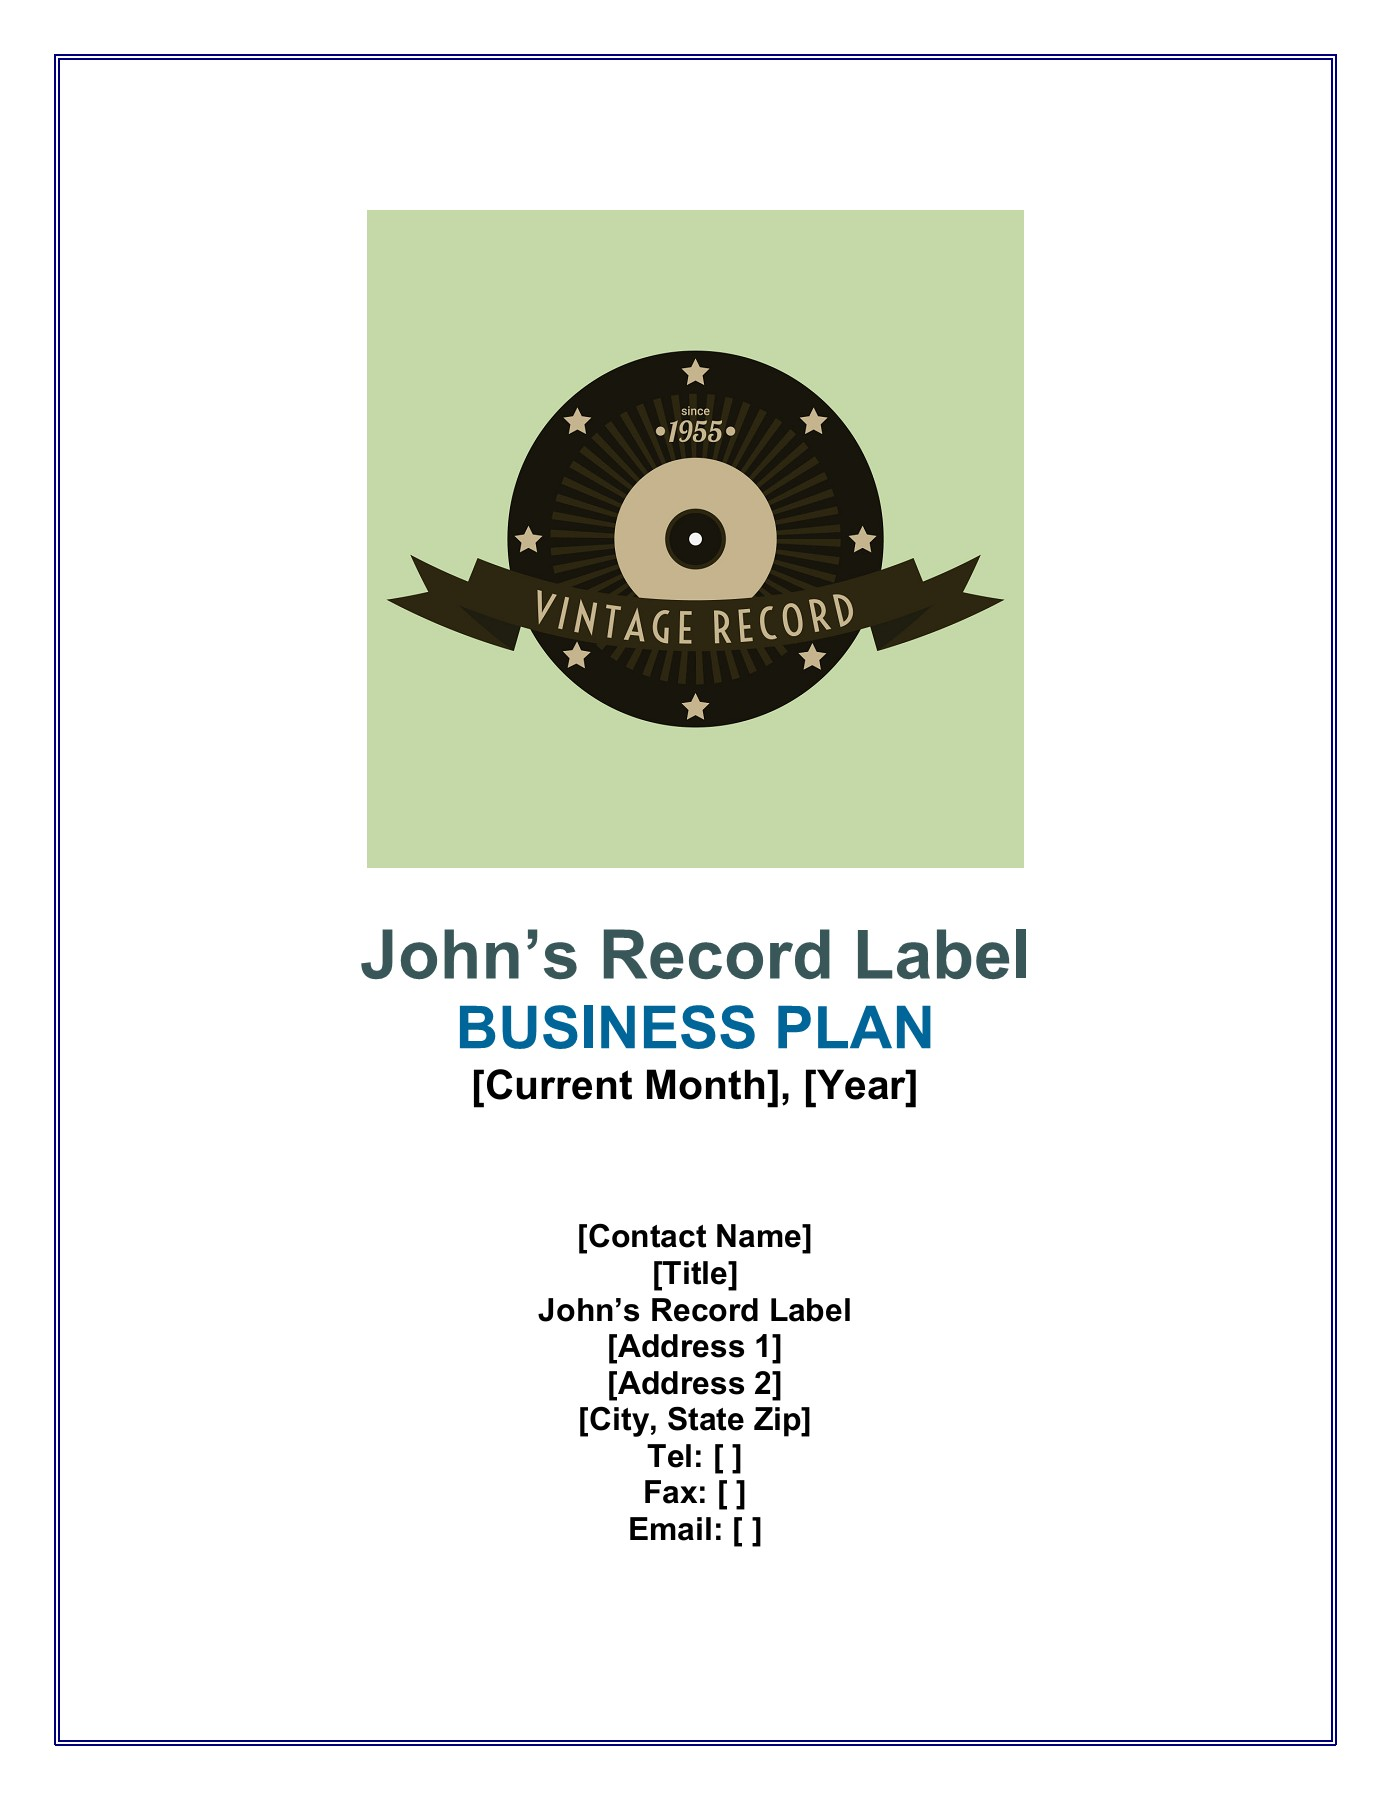 Sample Record Label Business Plan Pages 1 - 27 - Text